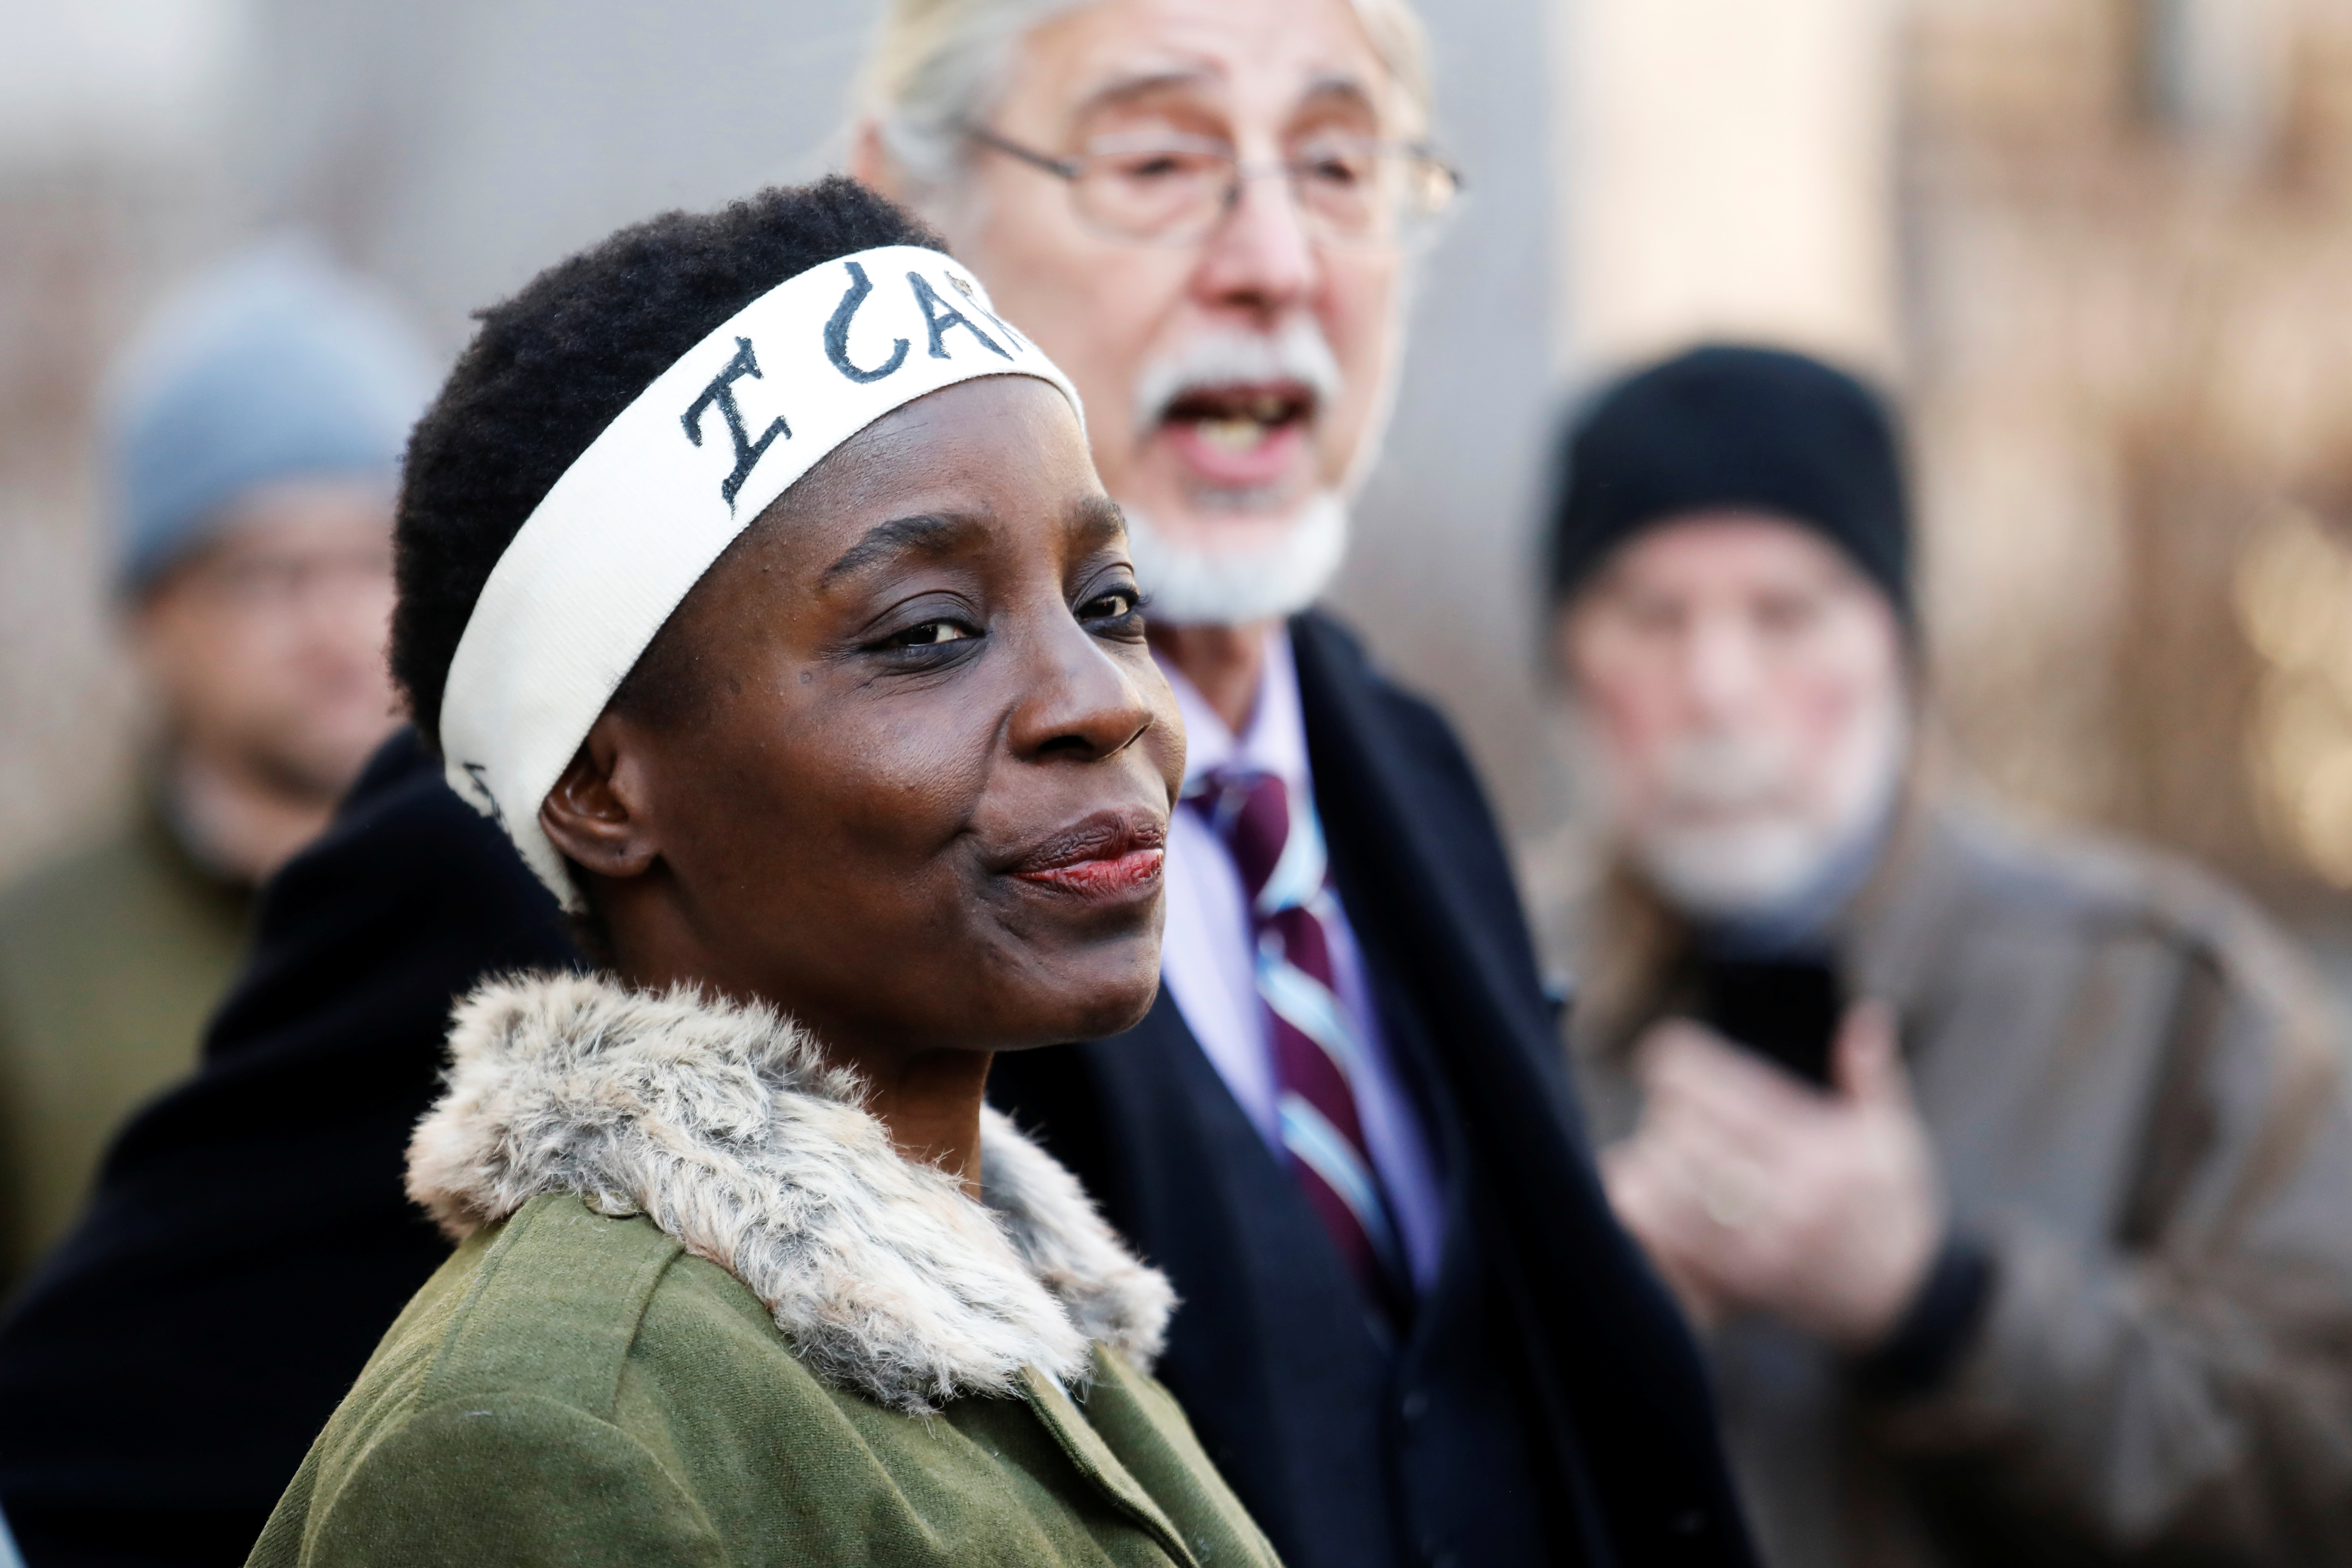 Therese Patricia Okoumou speaks to the media after her sentencing for conviction on attempted scaling of the Statue of Liberty to protest the U.S. immigration policy, outside a federal court in New York, U.S., March 19, 2019. REUTERS/Shannon Stapleton